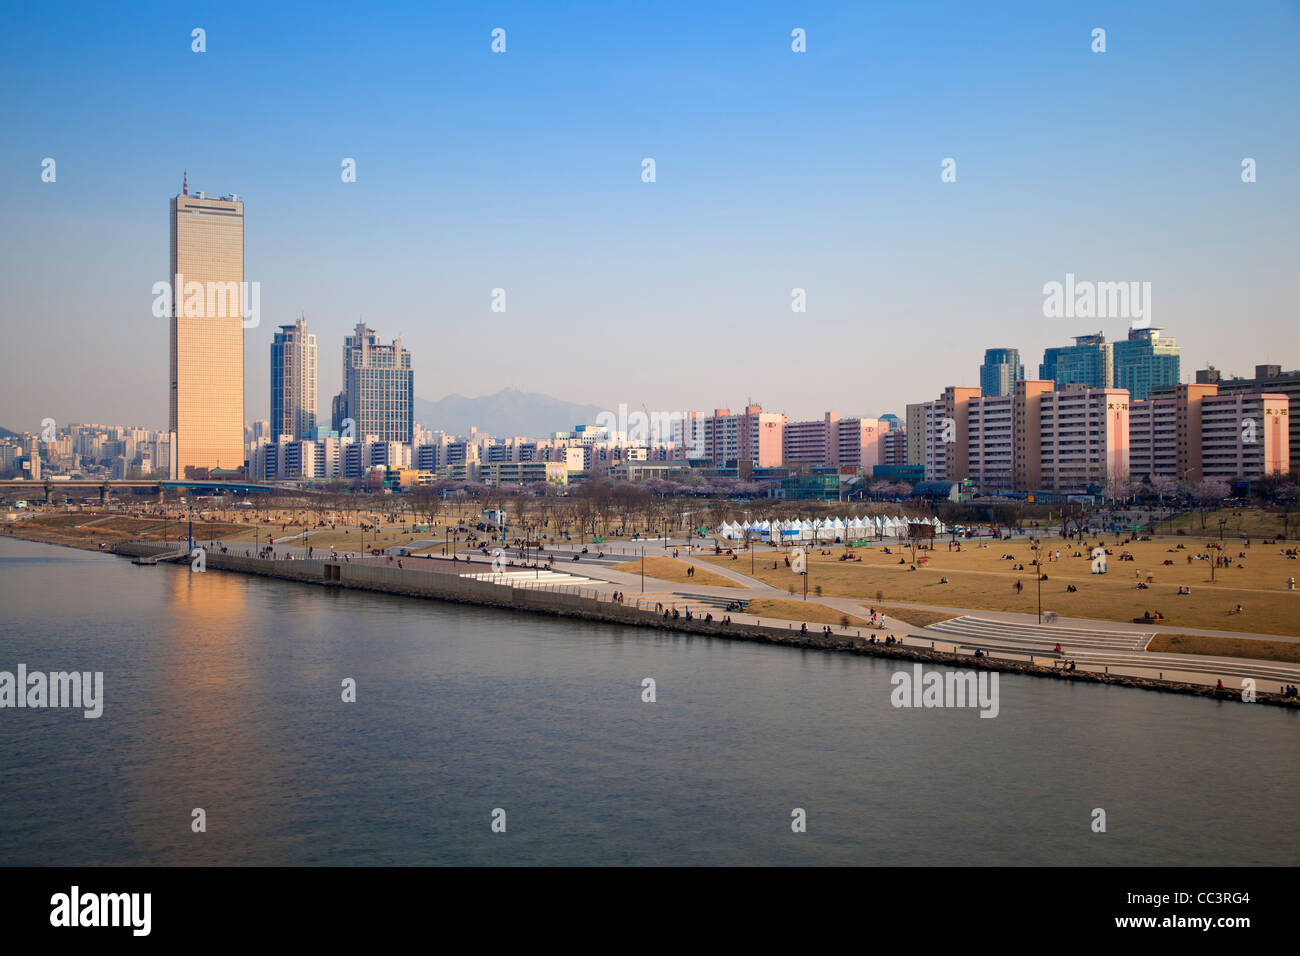 Korea, Seoul, Yeouido, 63 Building - one of Seouls most famous landmarks, on the banks of the Hangang river - Stock Image